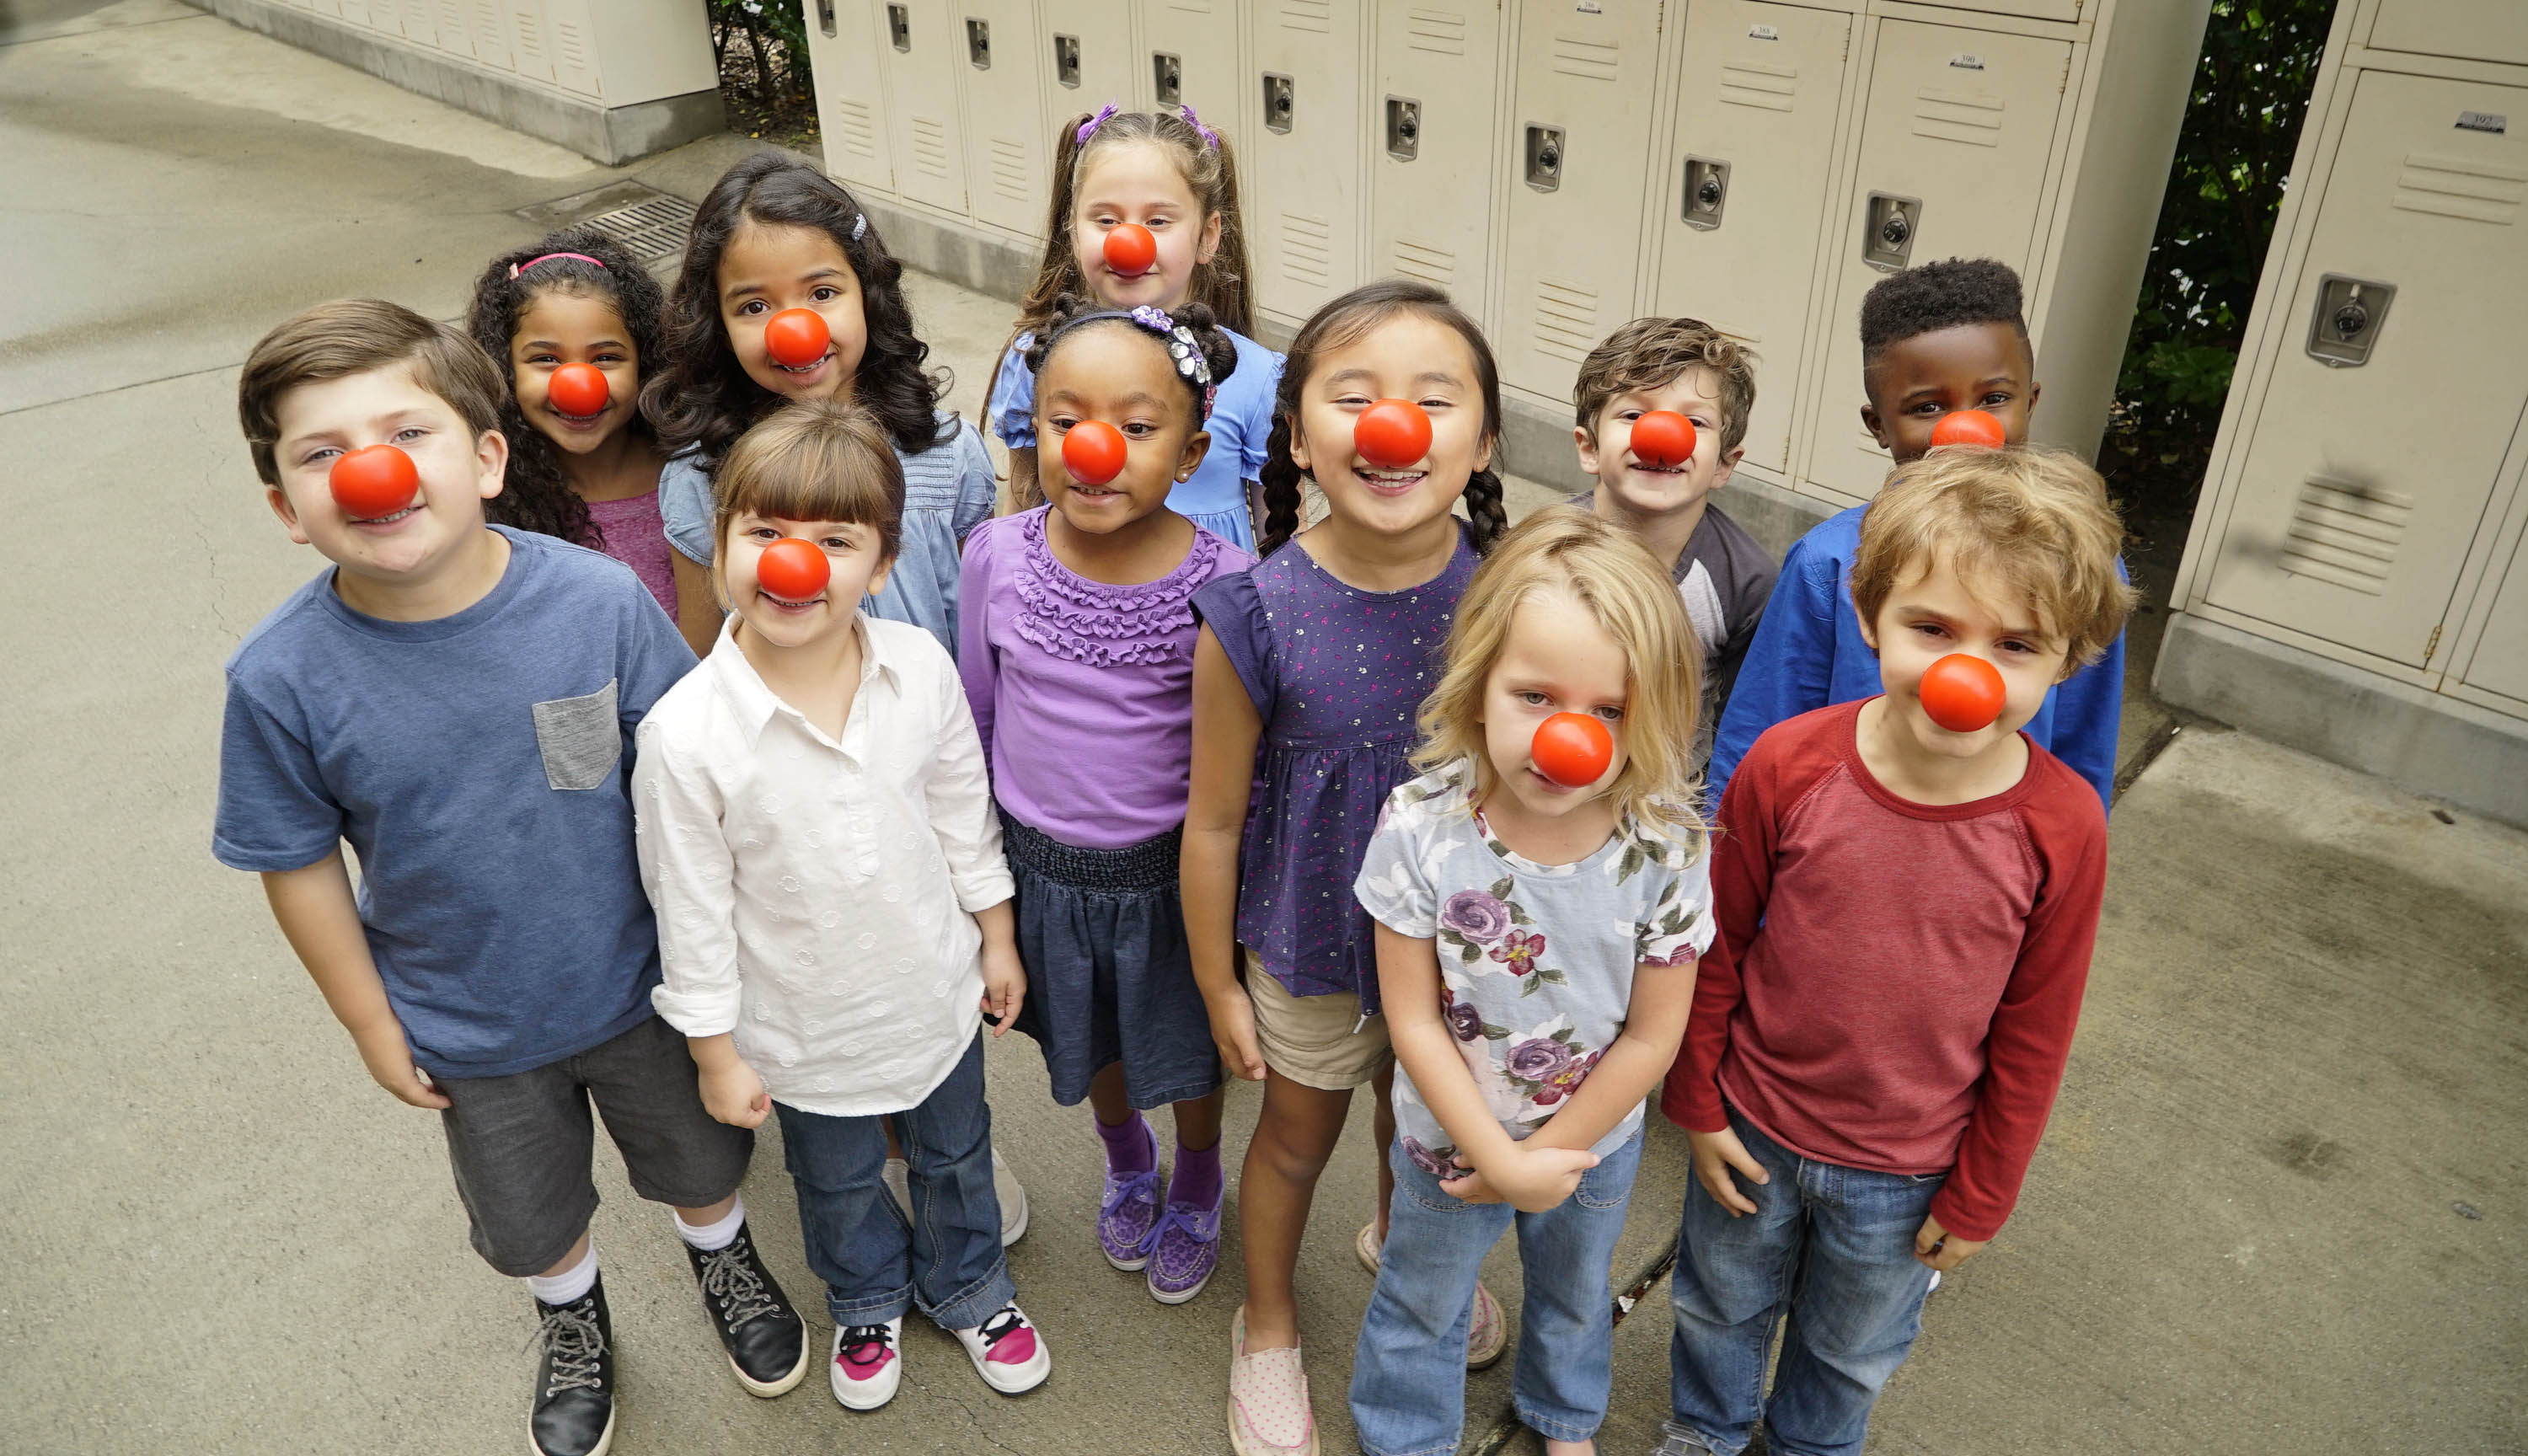 Since launch in 2015, Red Nose Day has raised over $100 million to help children in need.